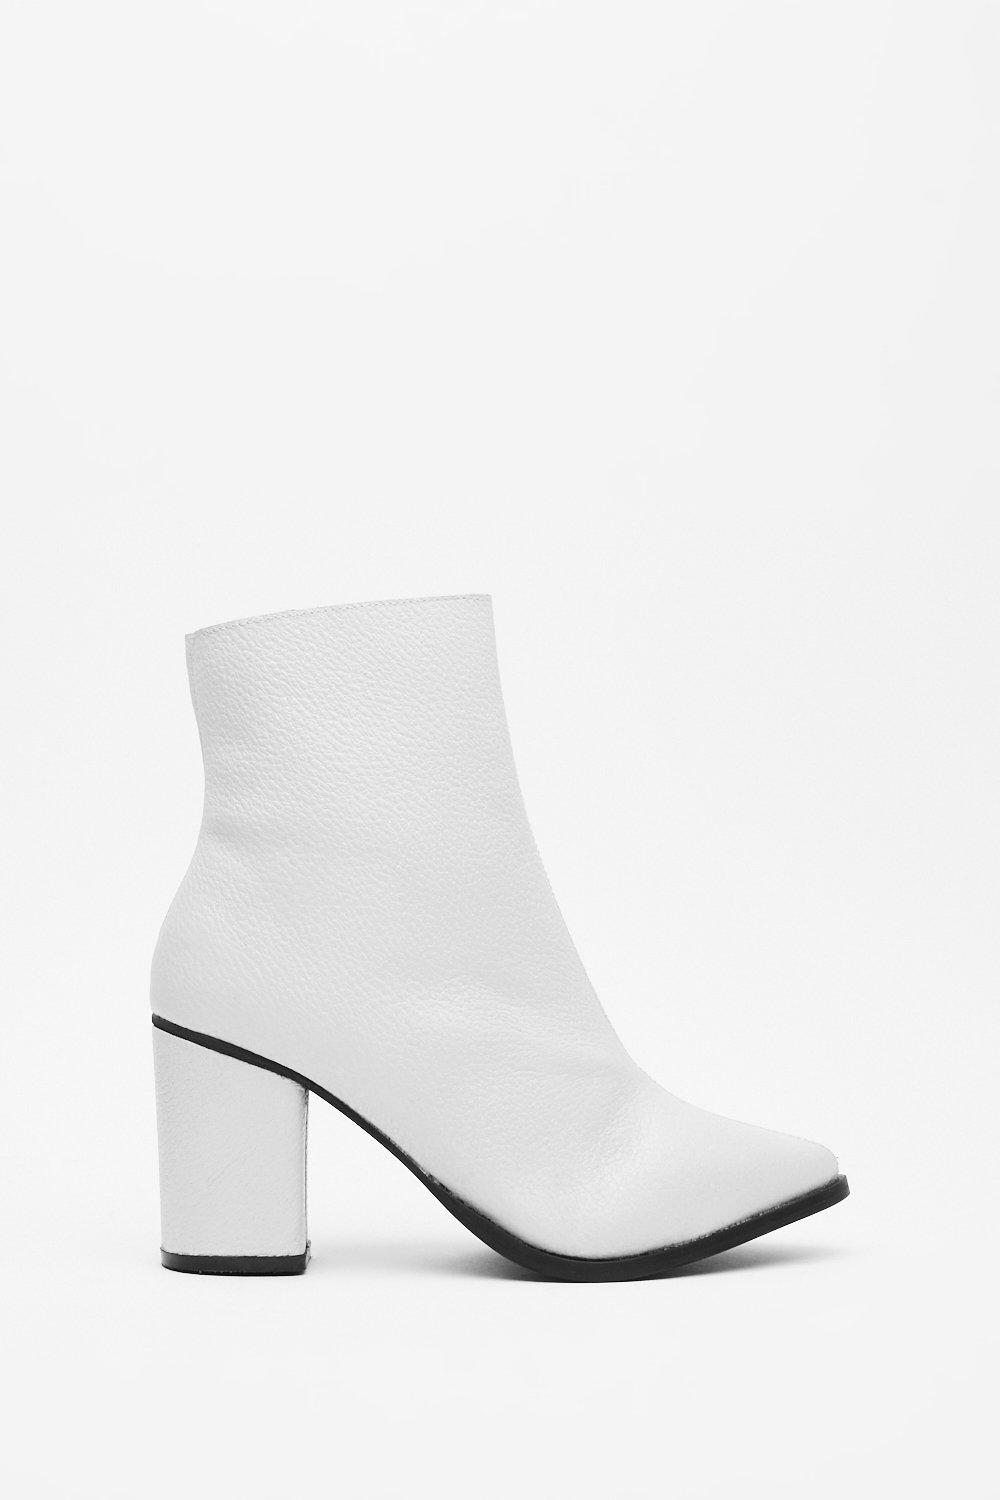 Image of Block 'Em Leather Heeled Boots